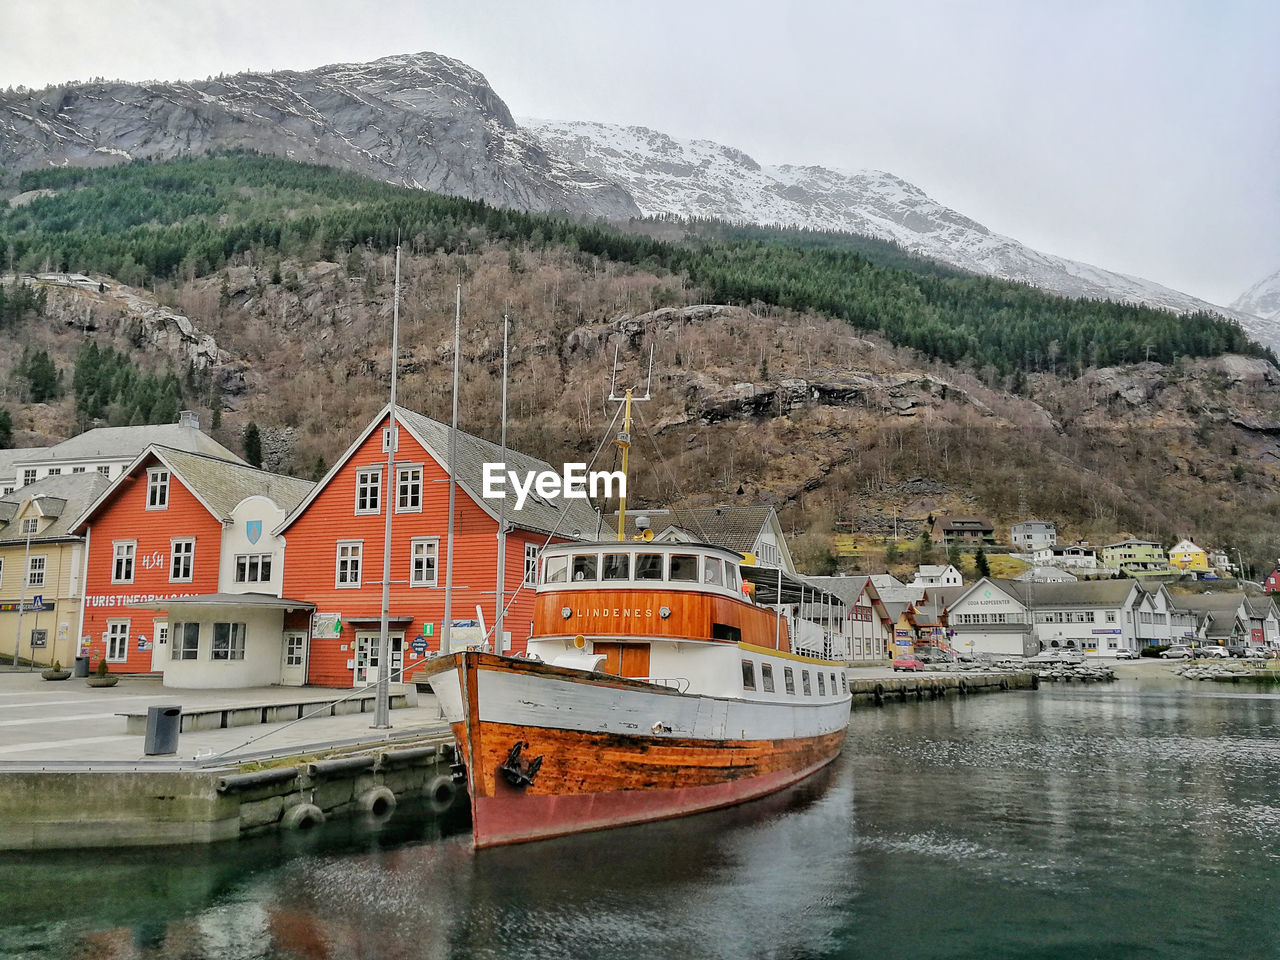 water, built structure, architecture, mountain, nautical vessel, building exterior, transportation, mode of transportation, building, waterfront, nature, day, no people, lake, sky, beauty in nature, reflection, house, moored, outdoors, row house